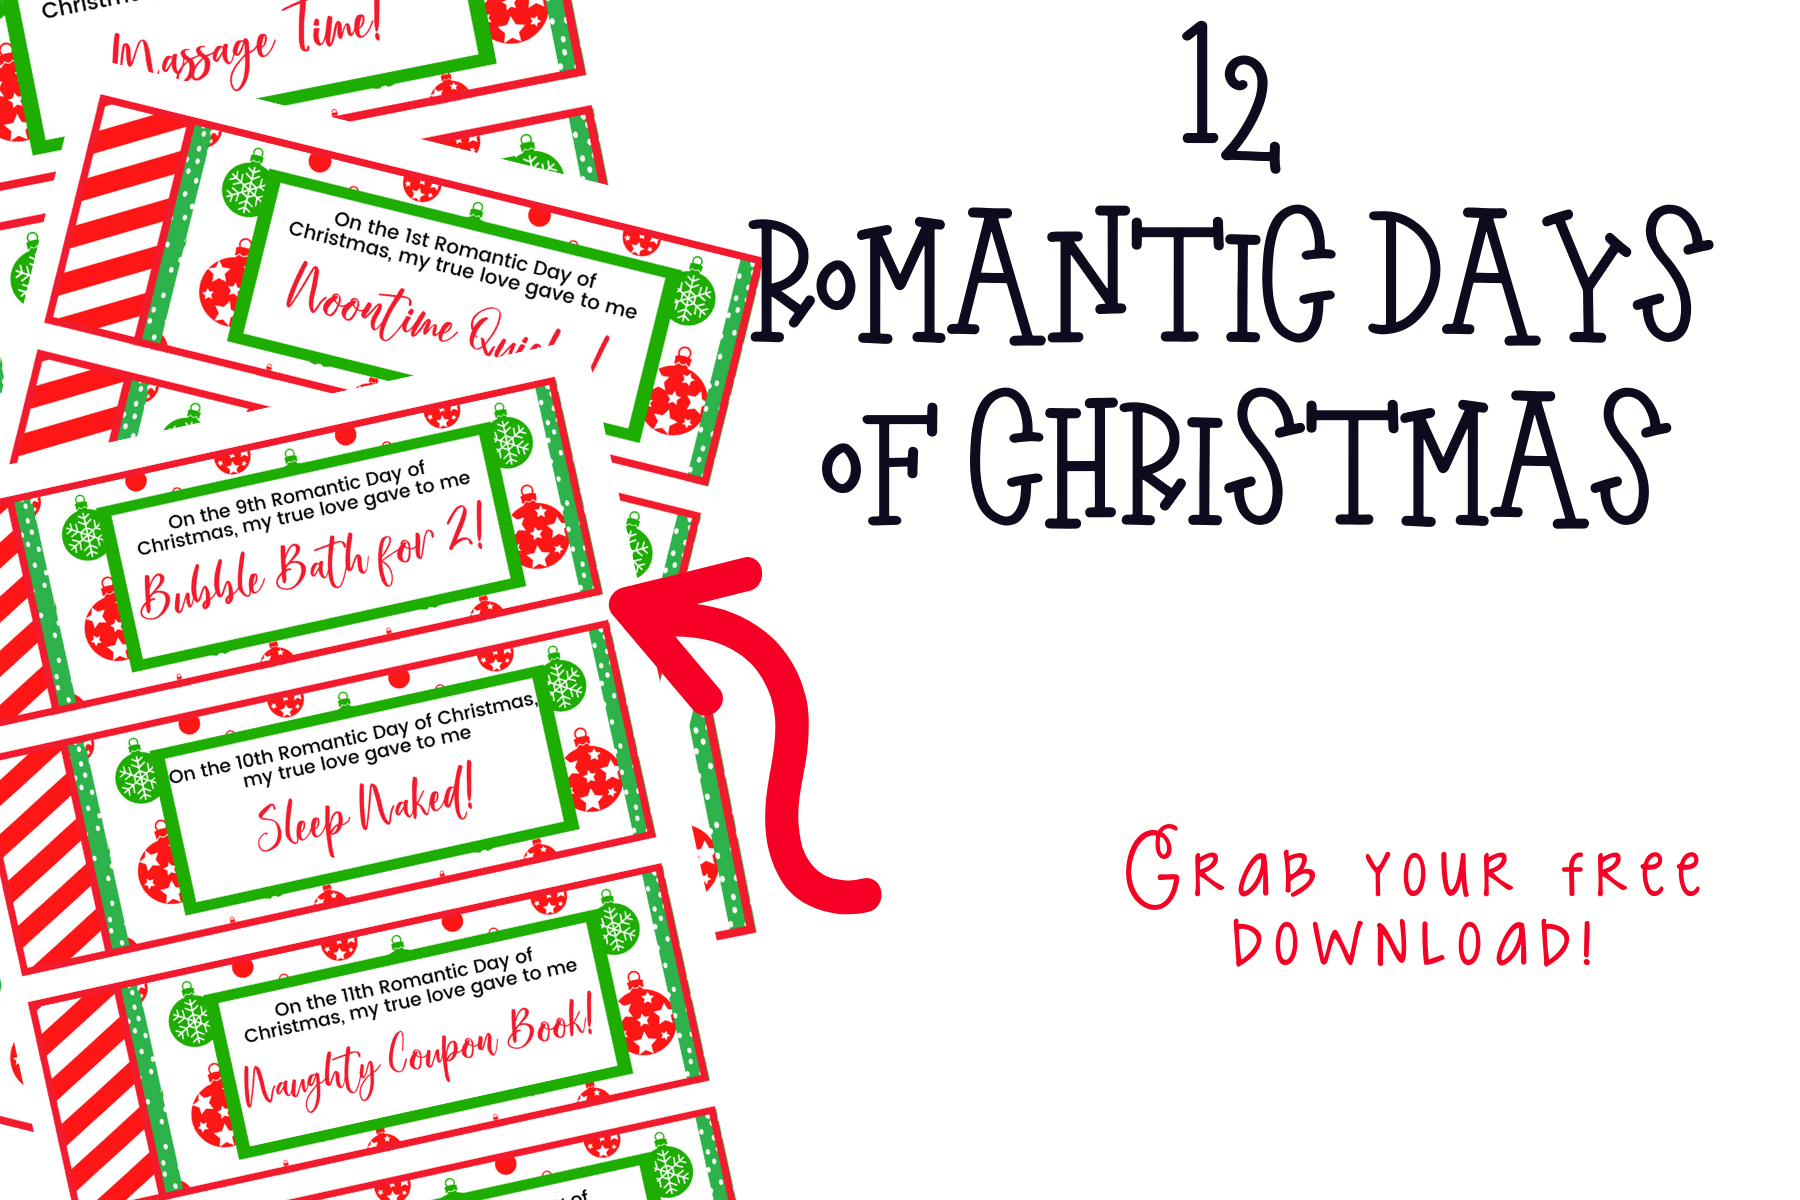 Christmas is one of the happiest times of the year. It doesn't have to just be stressful for you and fun for the kids. Have fun with these 12 Romantic Days of Christmas and give your love life a whirl this holiday season!